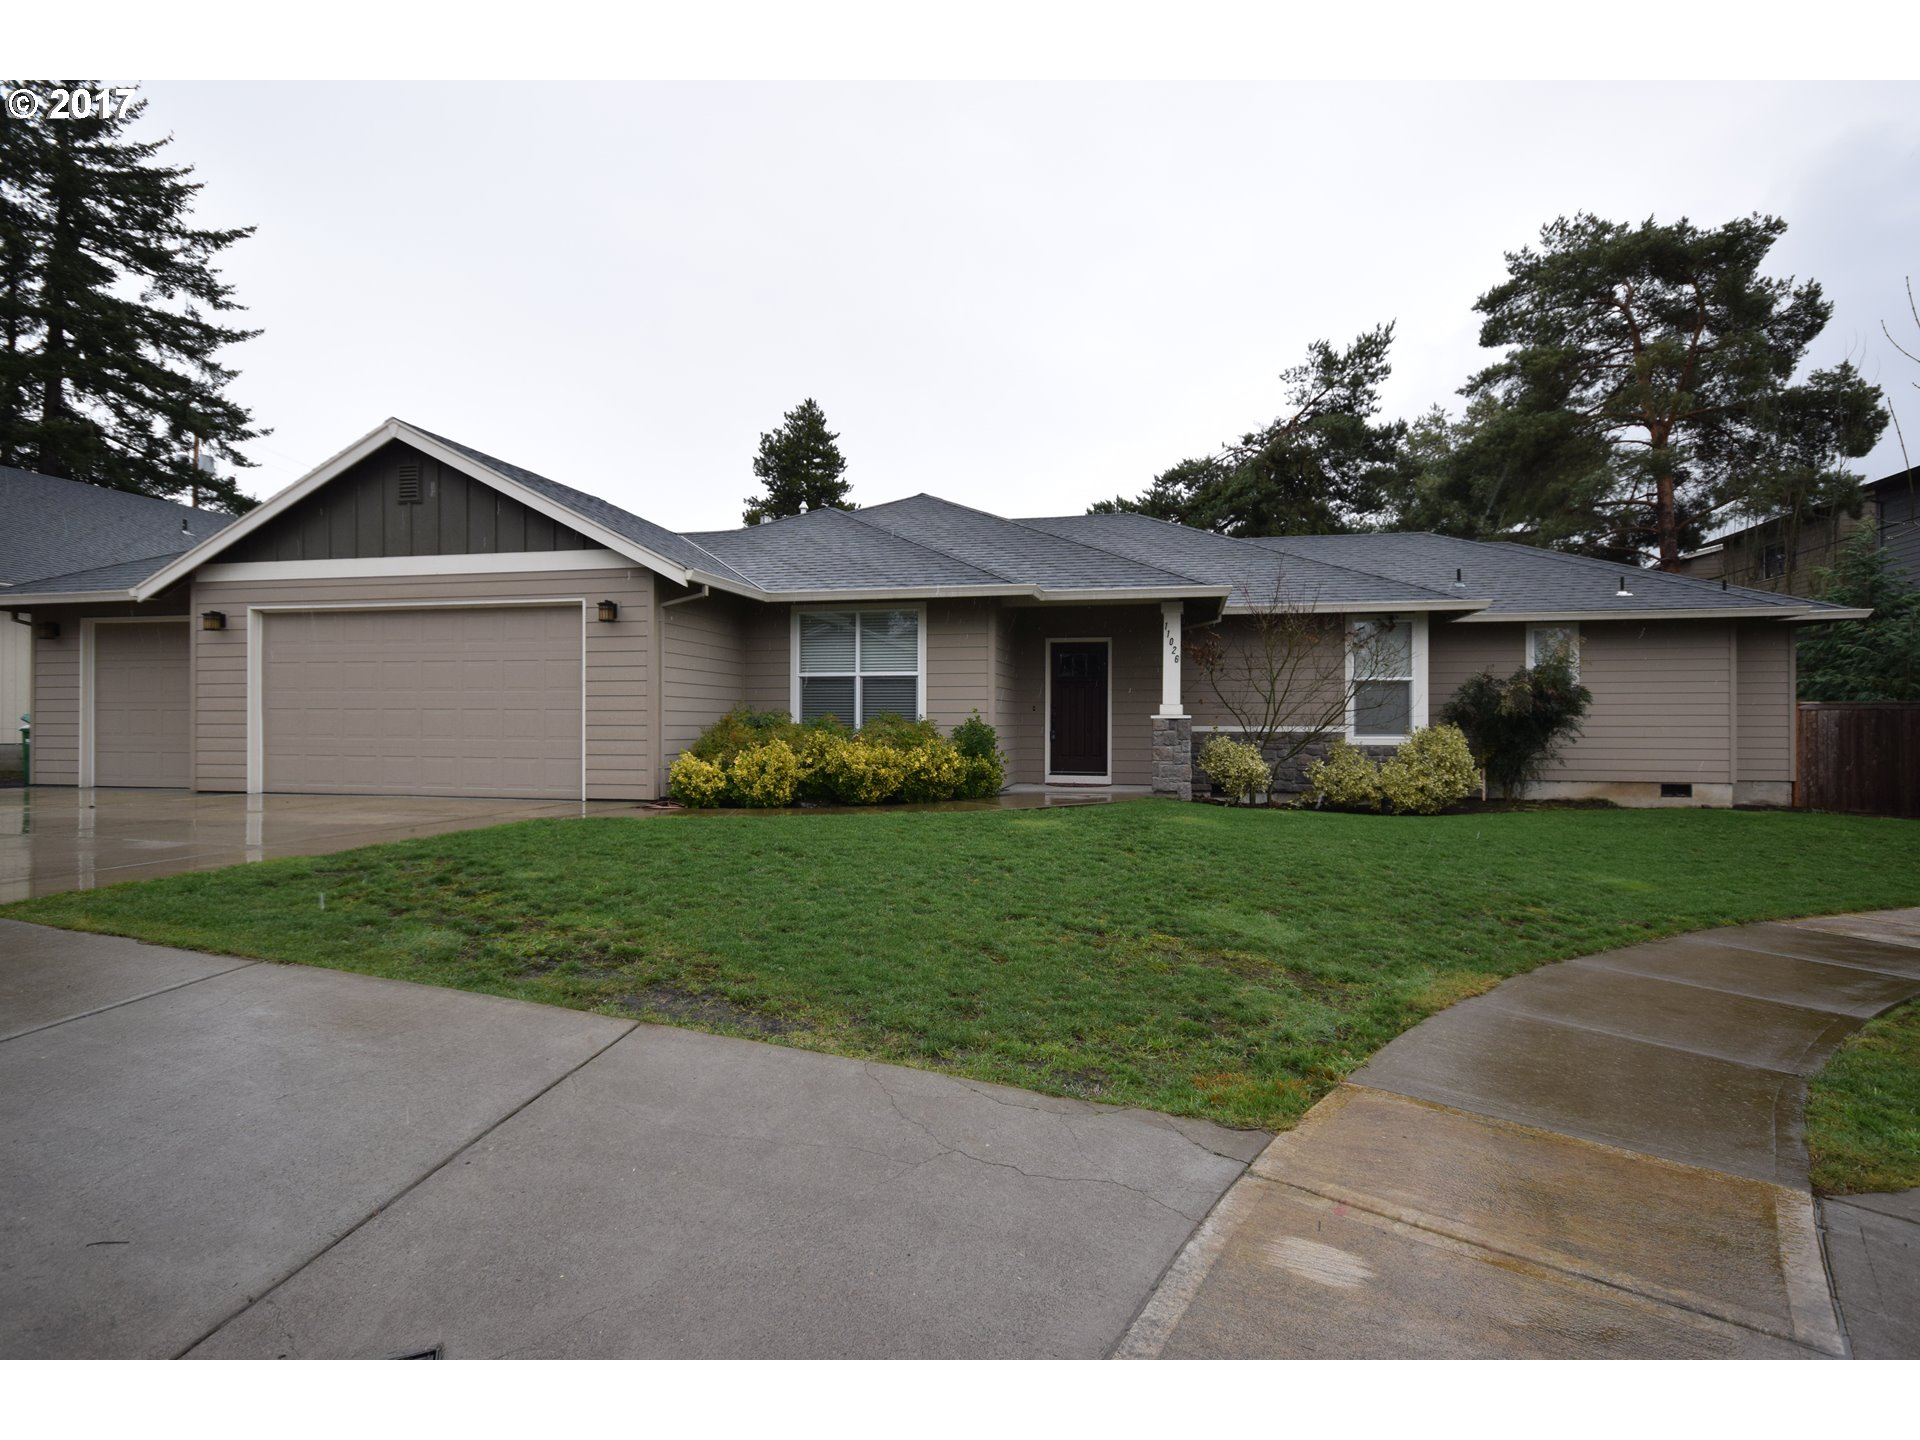 tigard oregon real estate from 325 000 400 000 the rob levy team